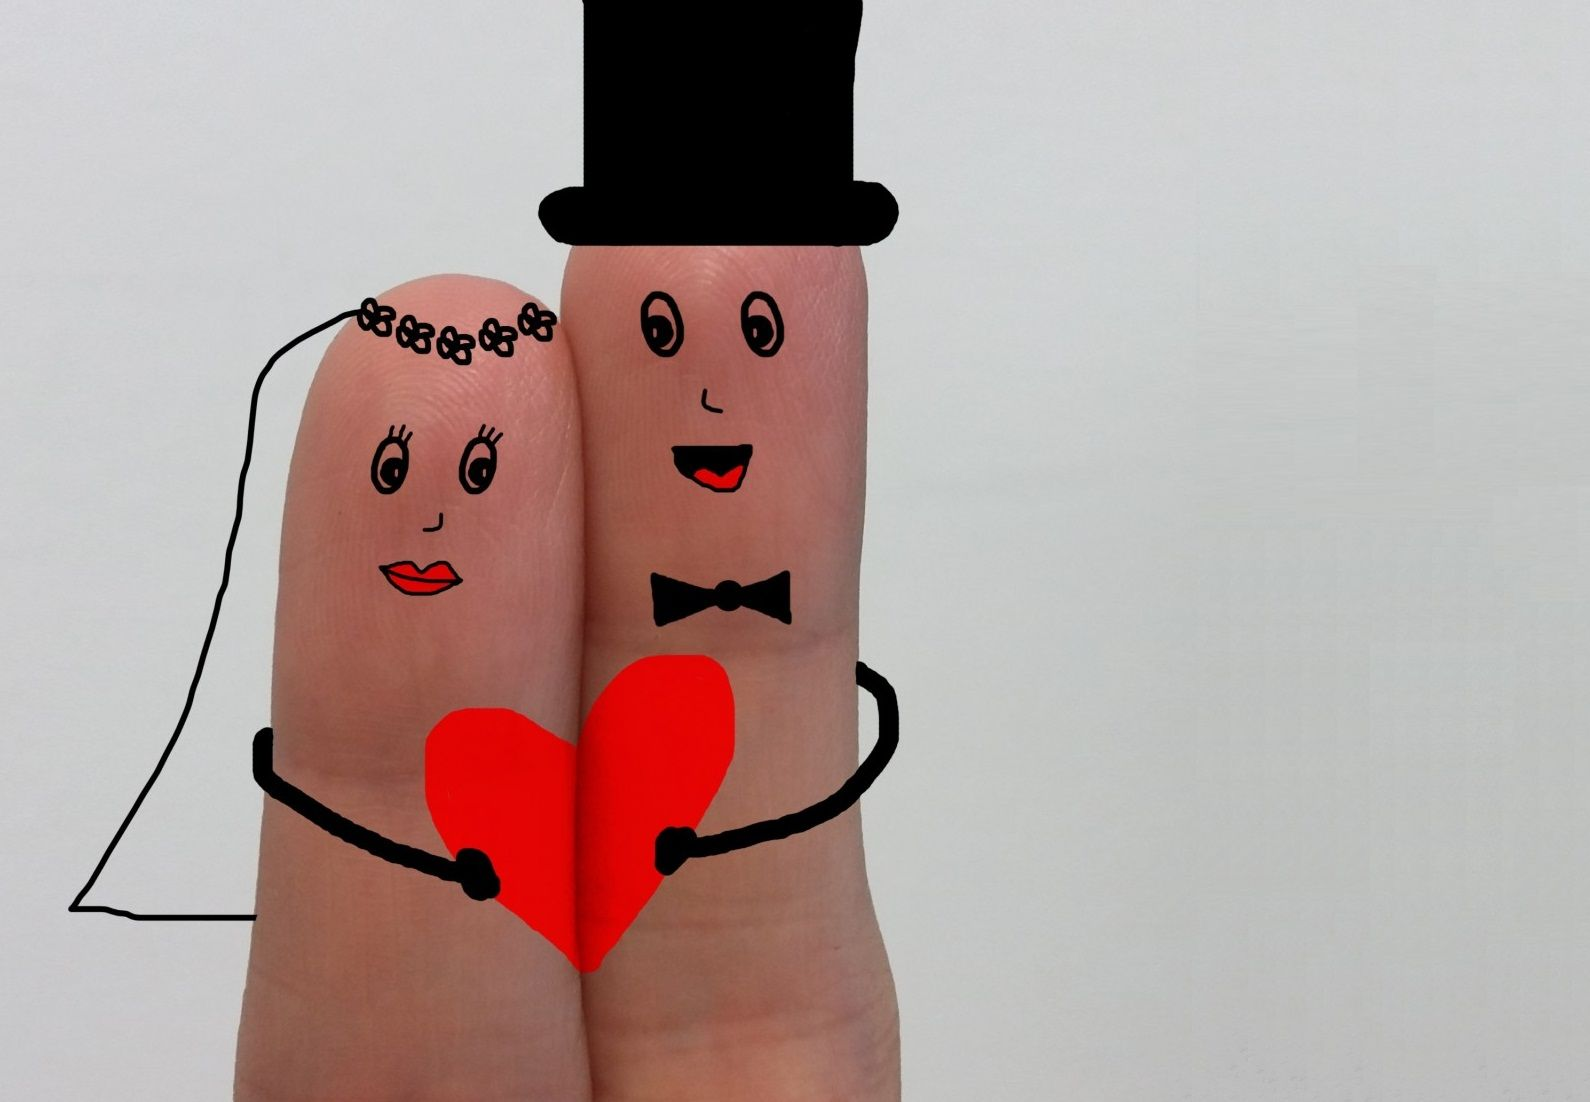 Trusted Over By Millions For Divorceematrimony And Marriage